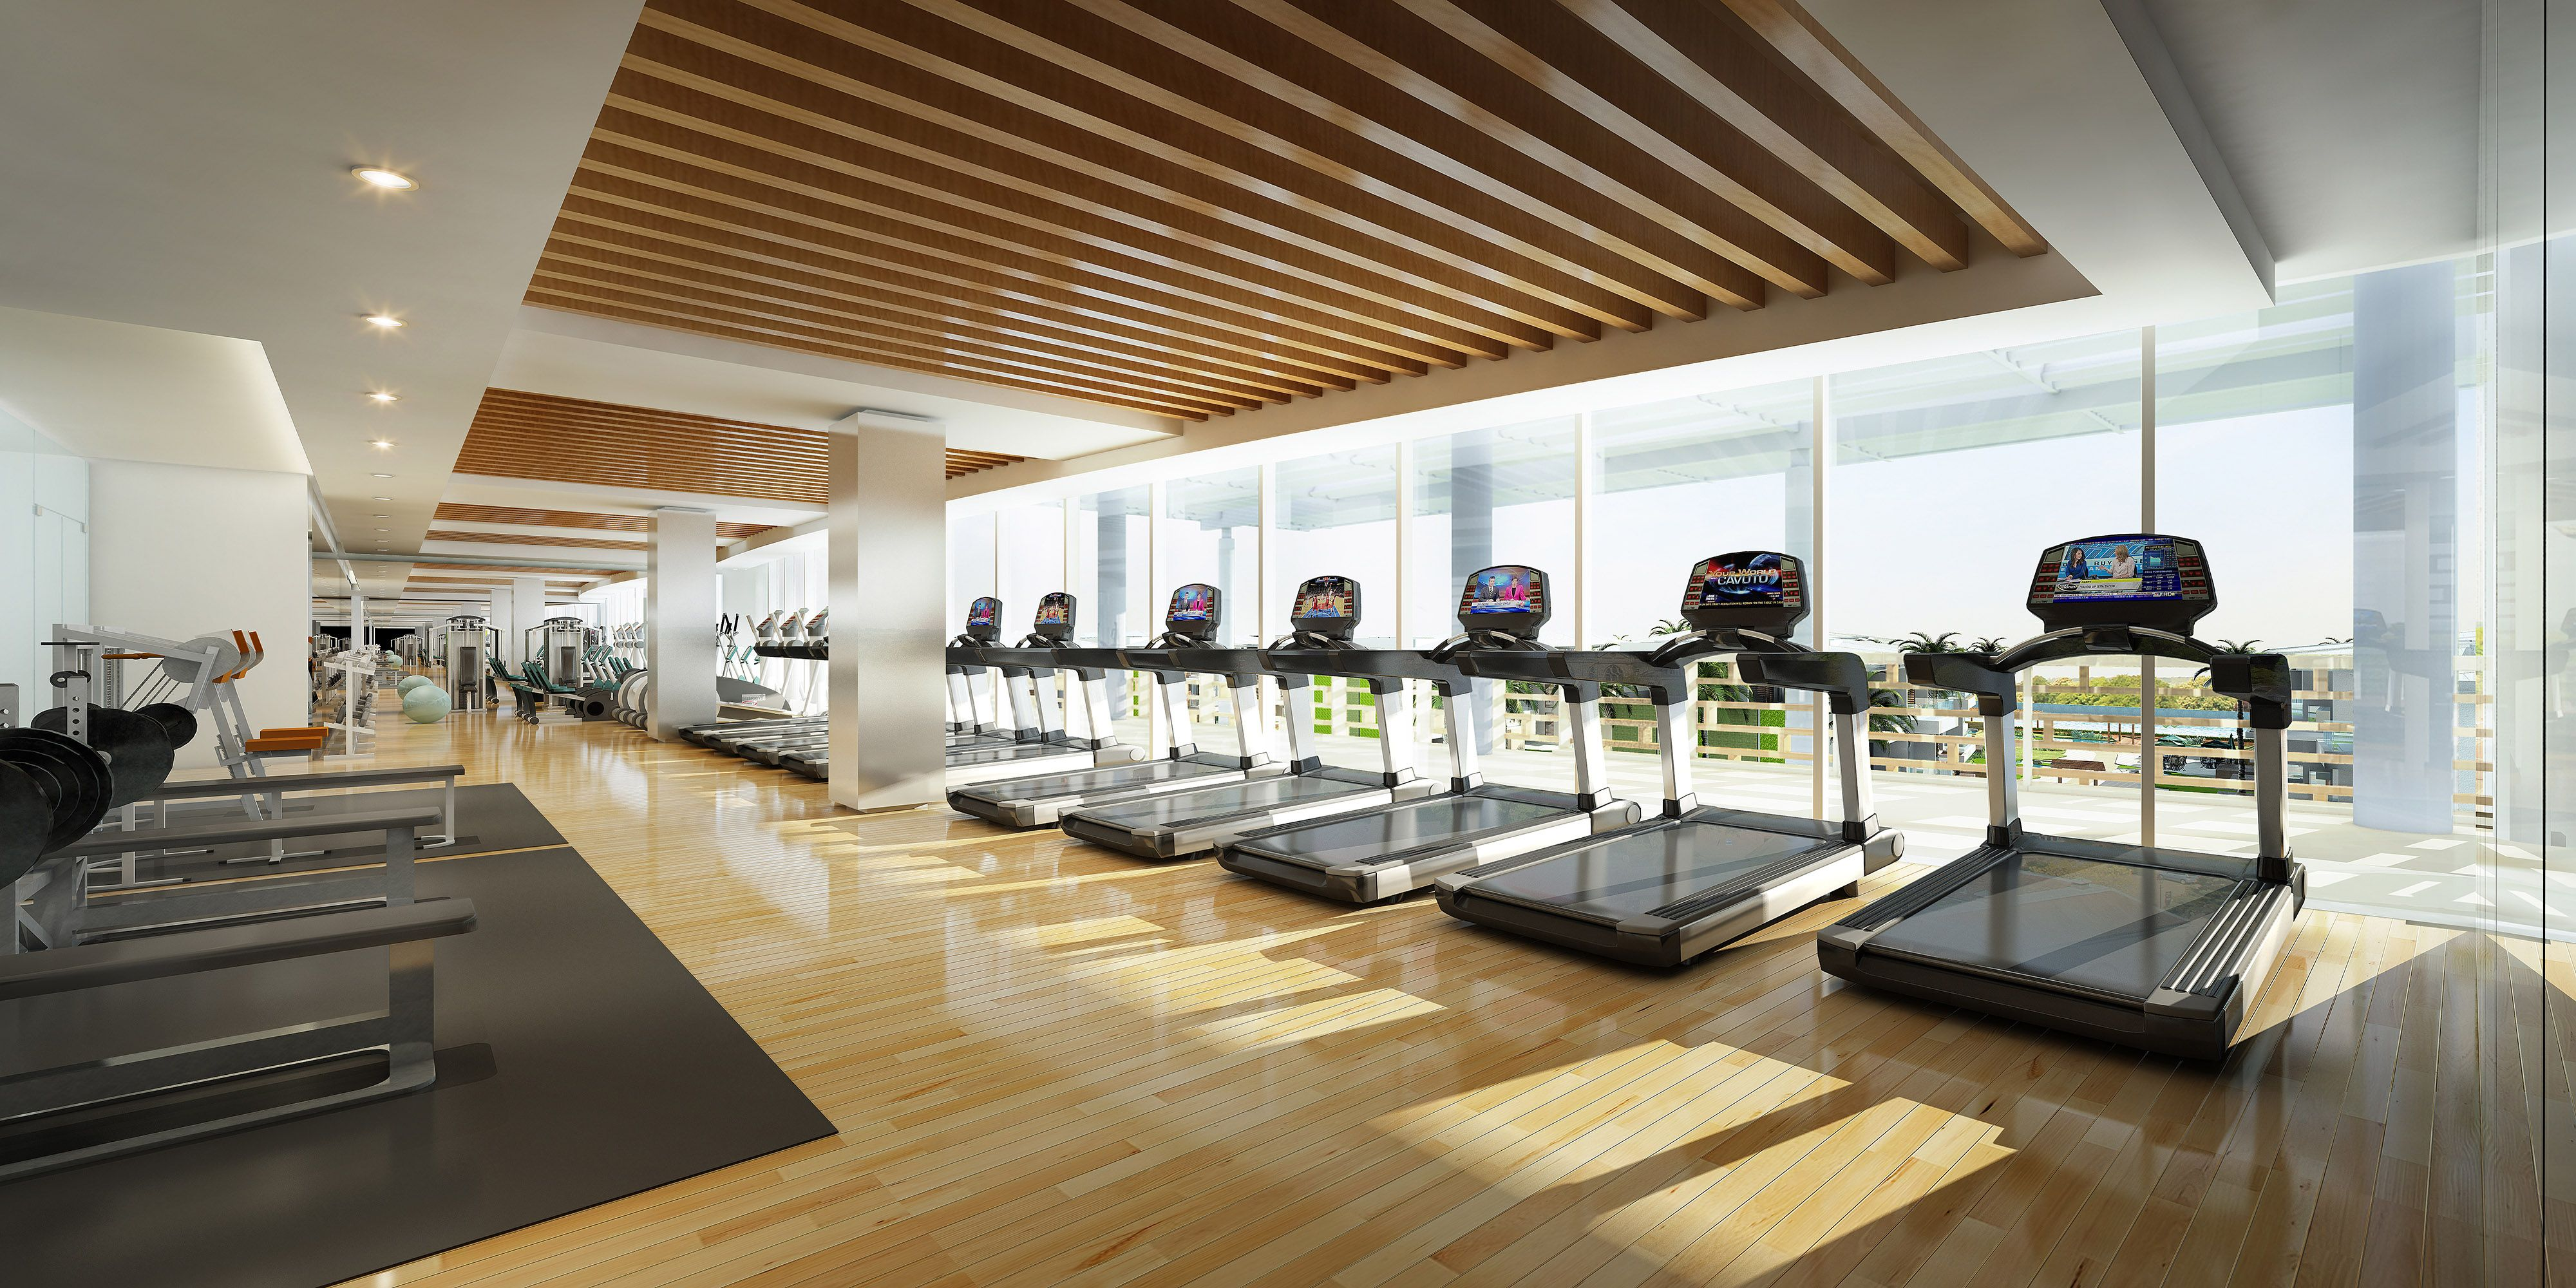 gym rendering google search gym pinterest salle salle de sport et sport. Black Bedroom Furniture Sets. Home Design Ideas